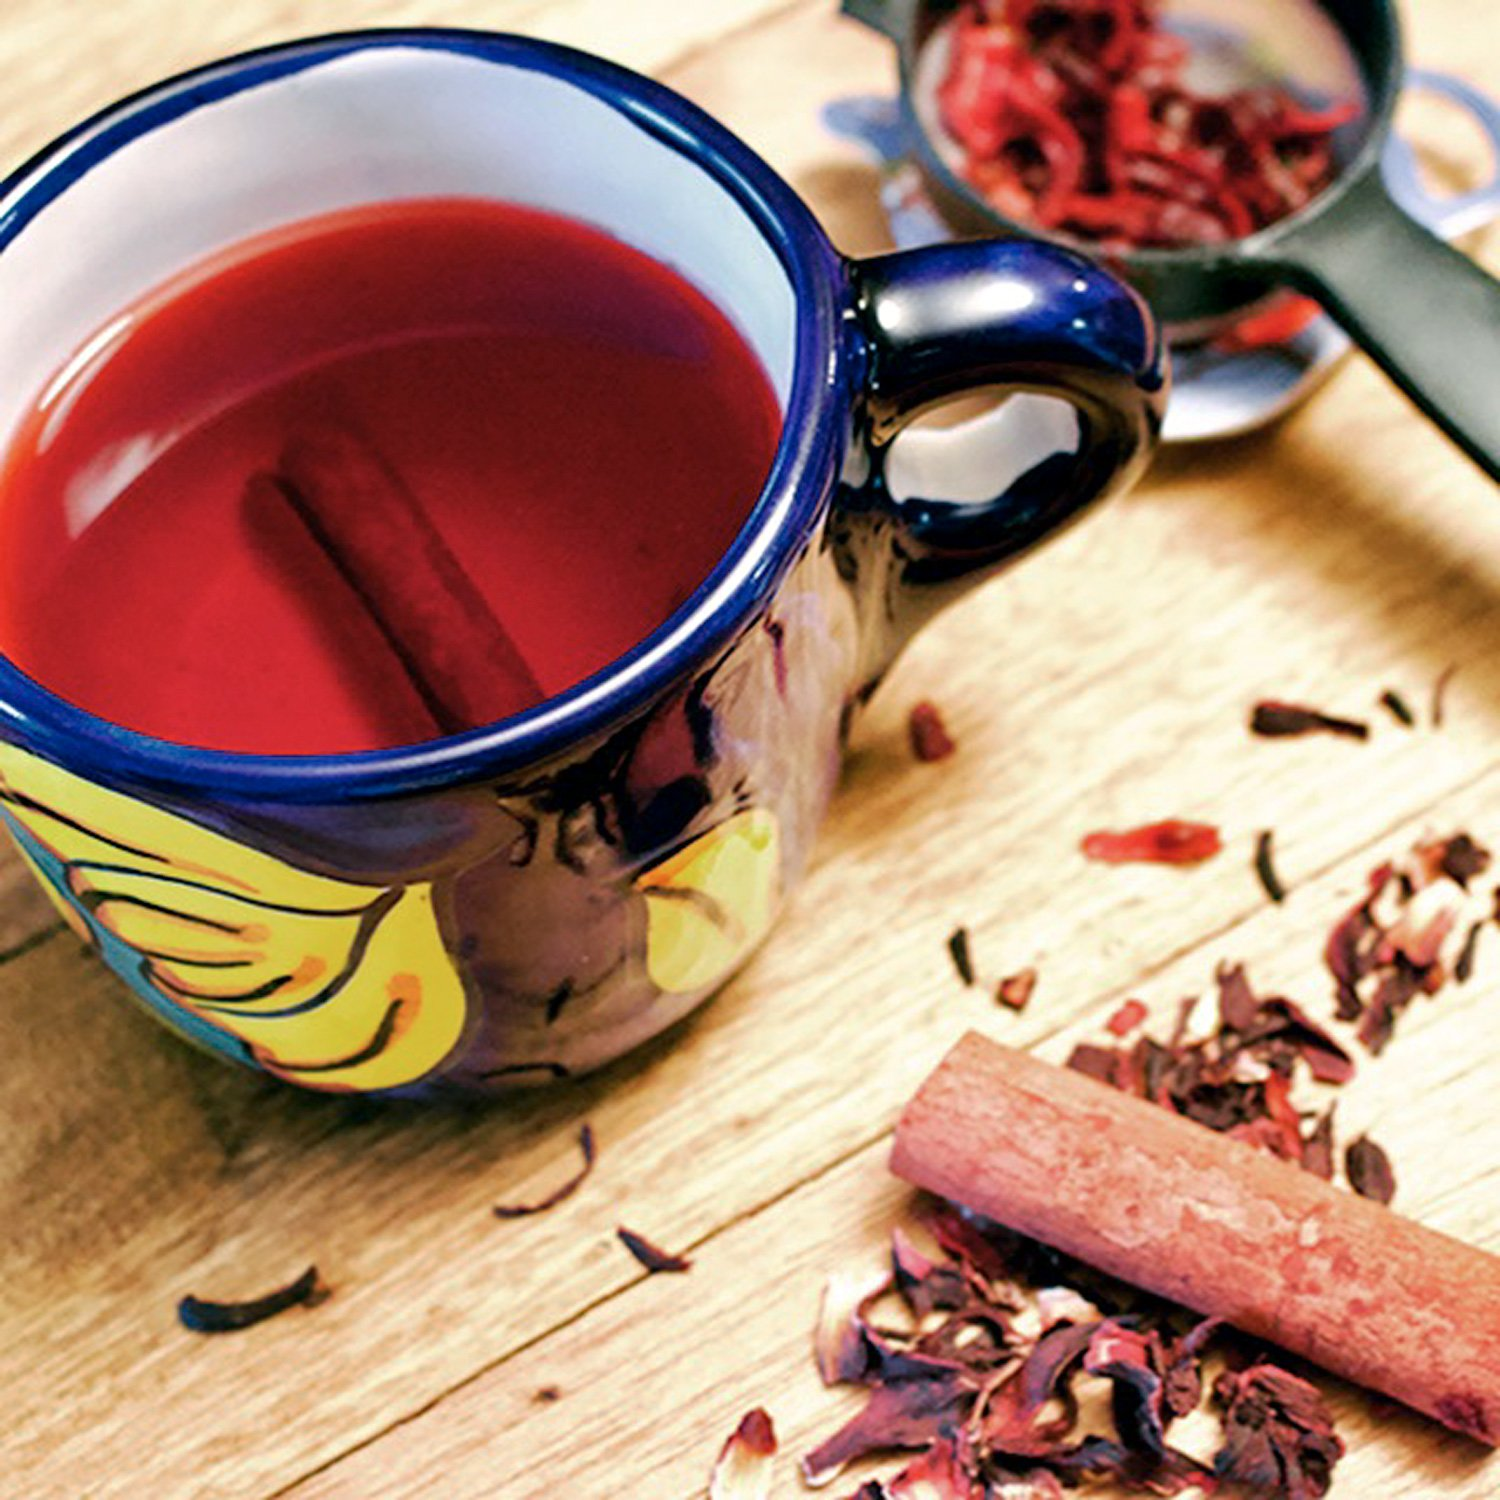 Hibiscus-Cinnamon Tea- Te de Jamaica y Canela- a popular tea that is consumed wildly in Mexico and not only, the famous Hibiscus flower tea, or Jamaica flowers te in Spanish. If you know the Mexican cuisine, you also know that this tea is called Agua De Jamaica.